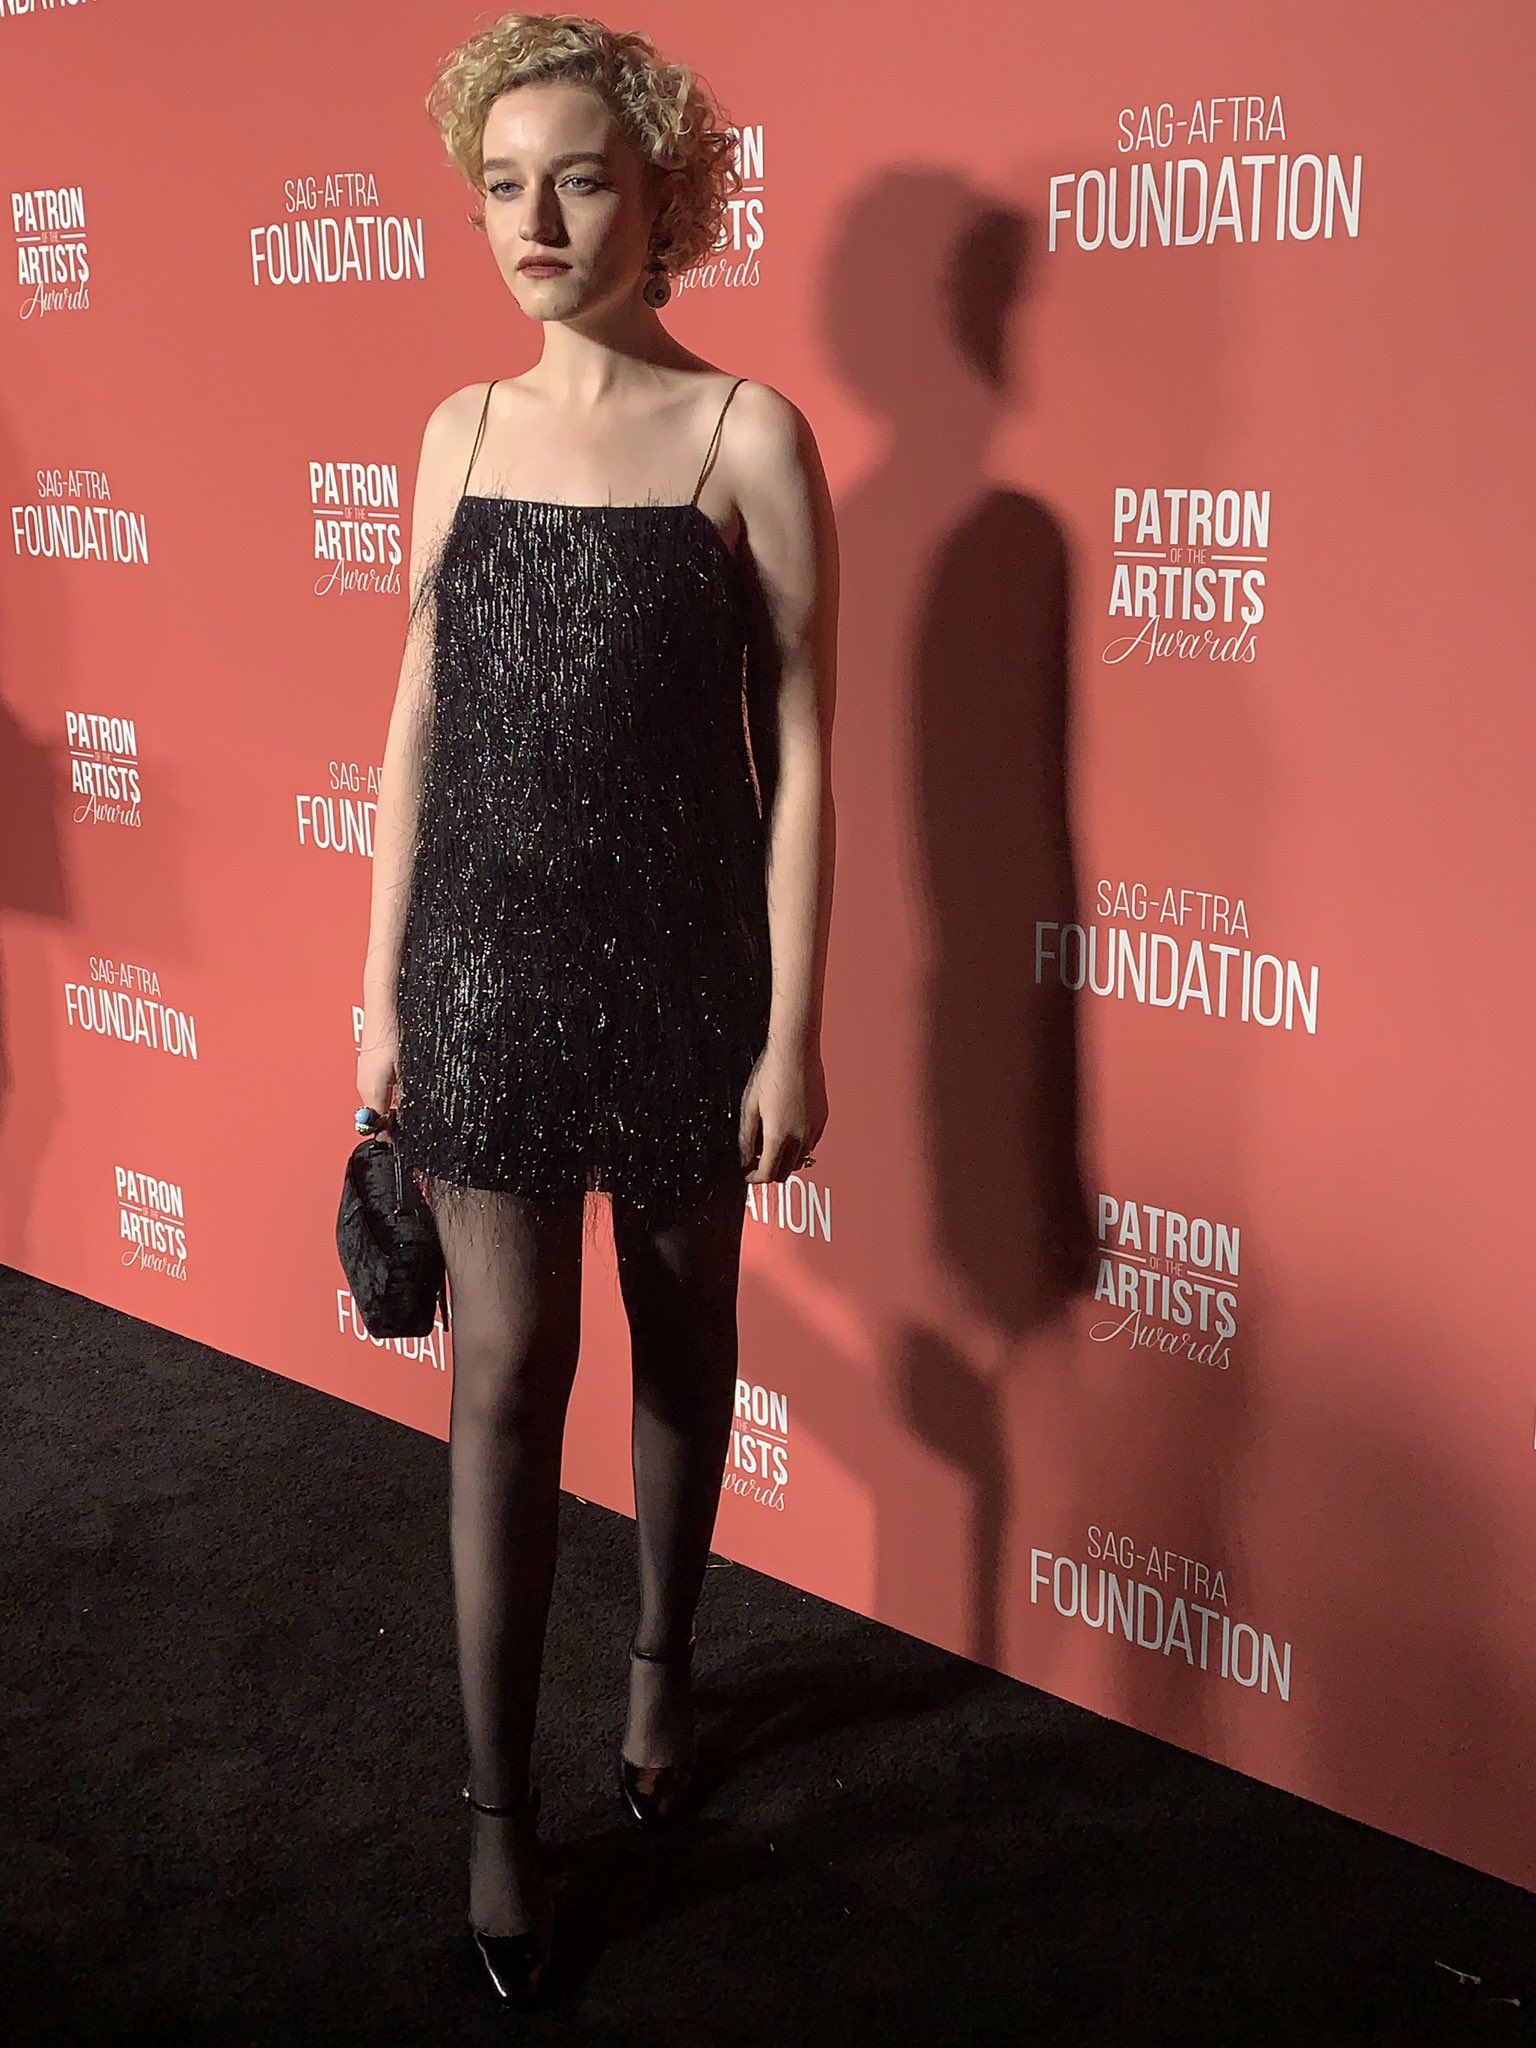 julia-garner-in-kate-spade-new-york-sag-aftra-foundations-4th-annual-patron-of-the-artists-awards